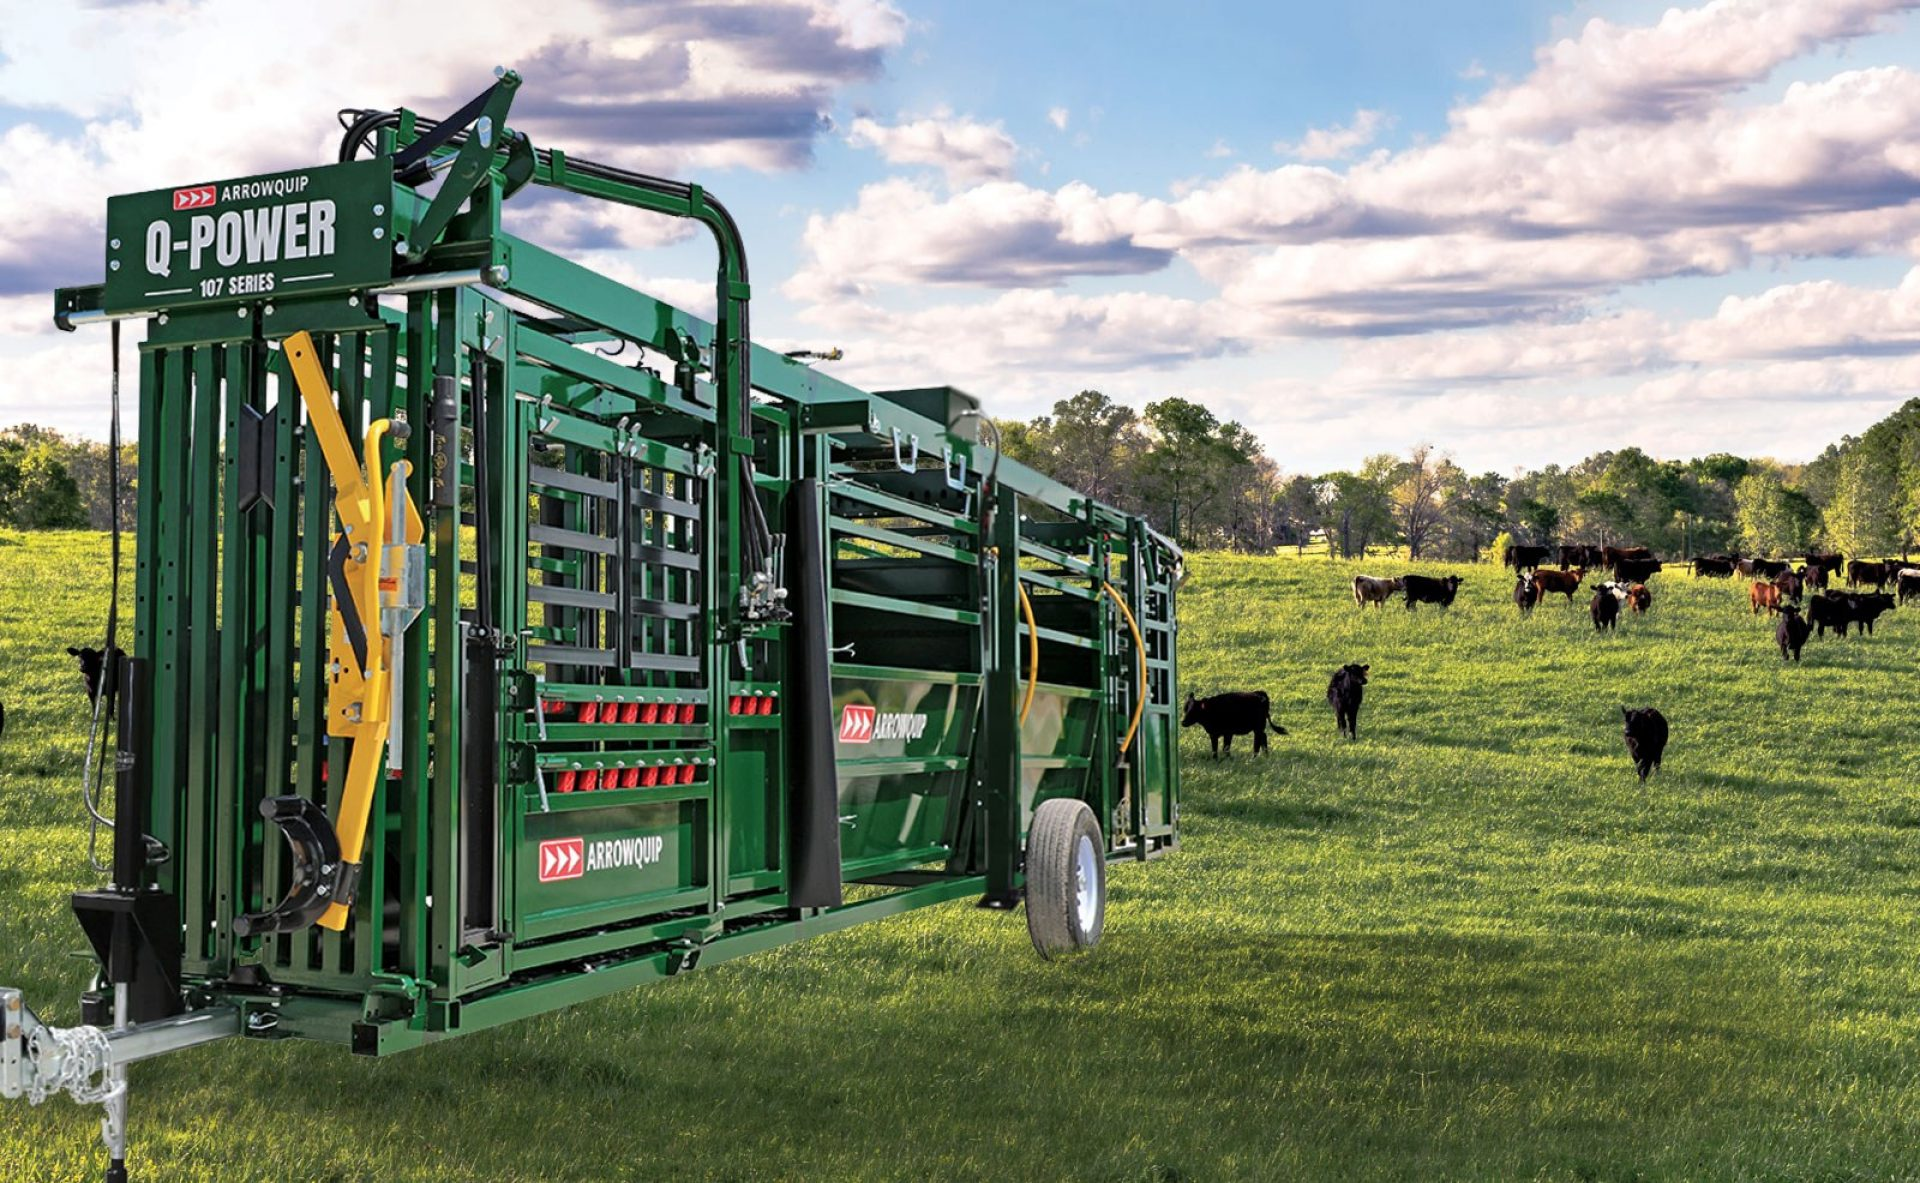 Hydraulic portable cattle crush, race and forcing pen in a field